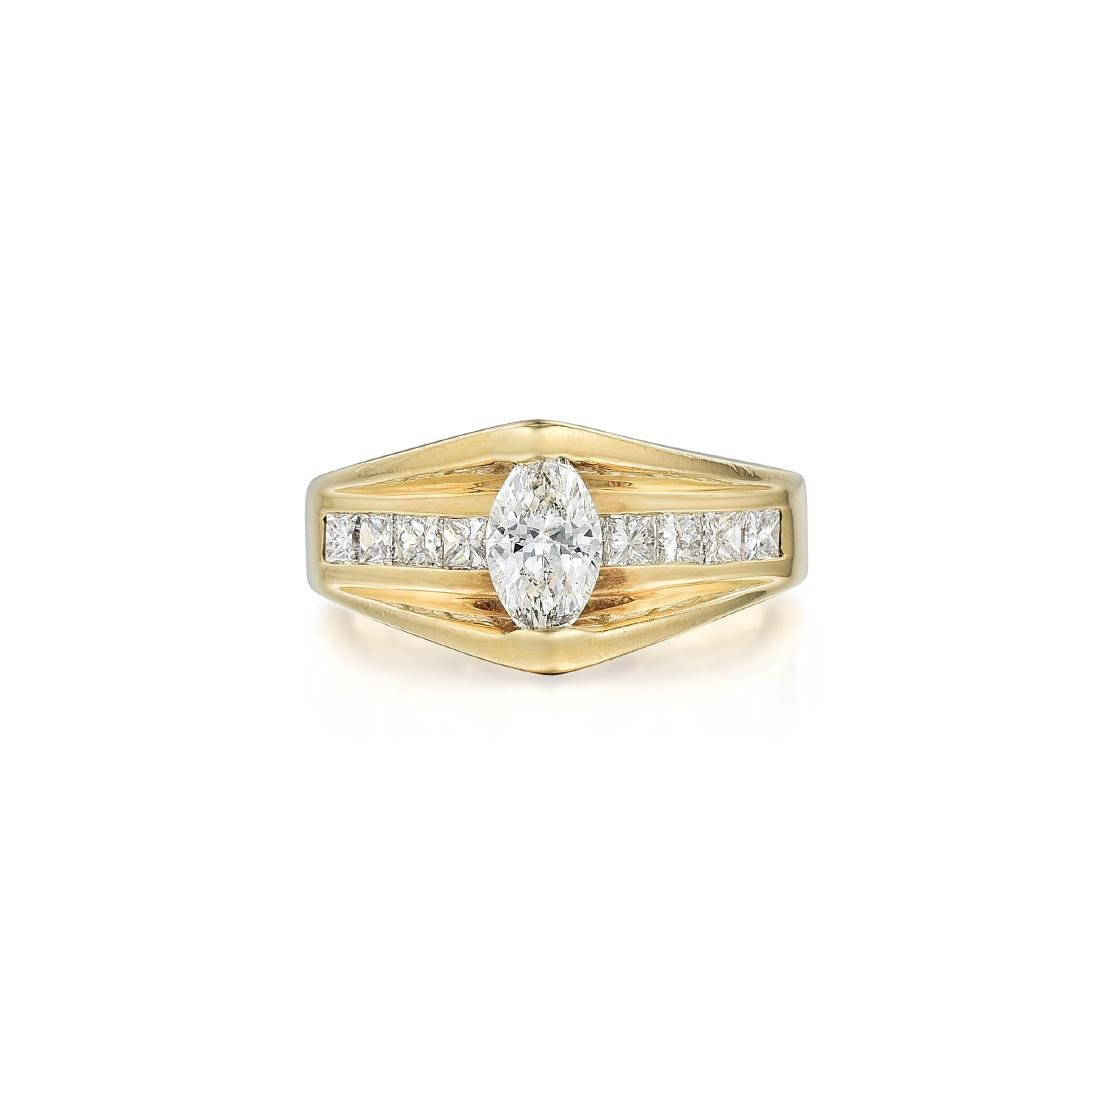 A 14K Gold Marquise Diamond Ring